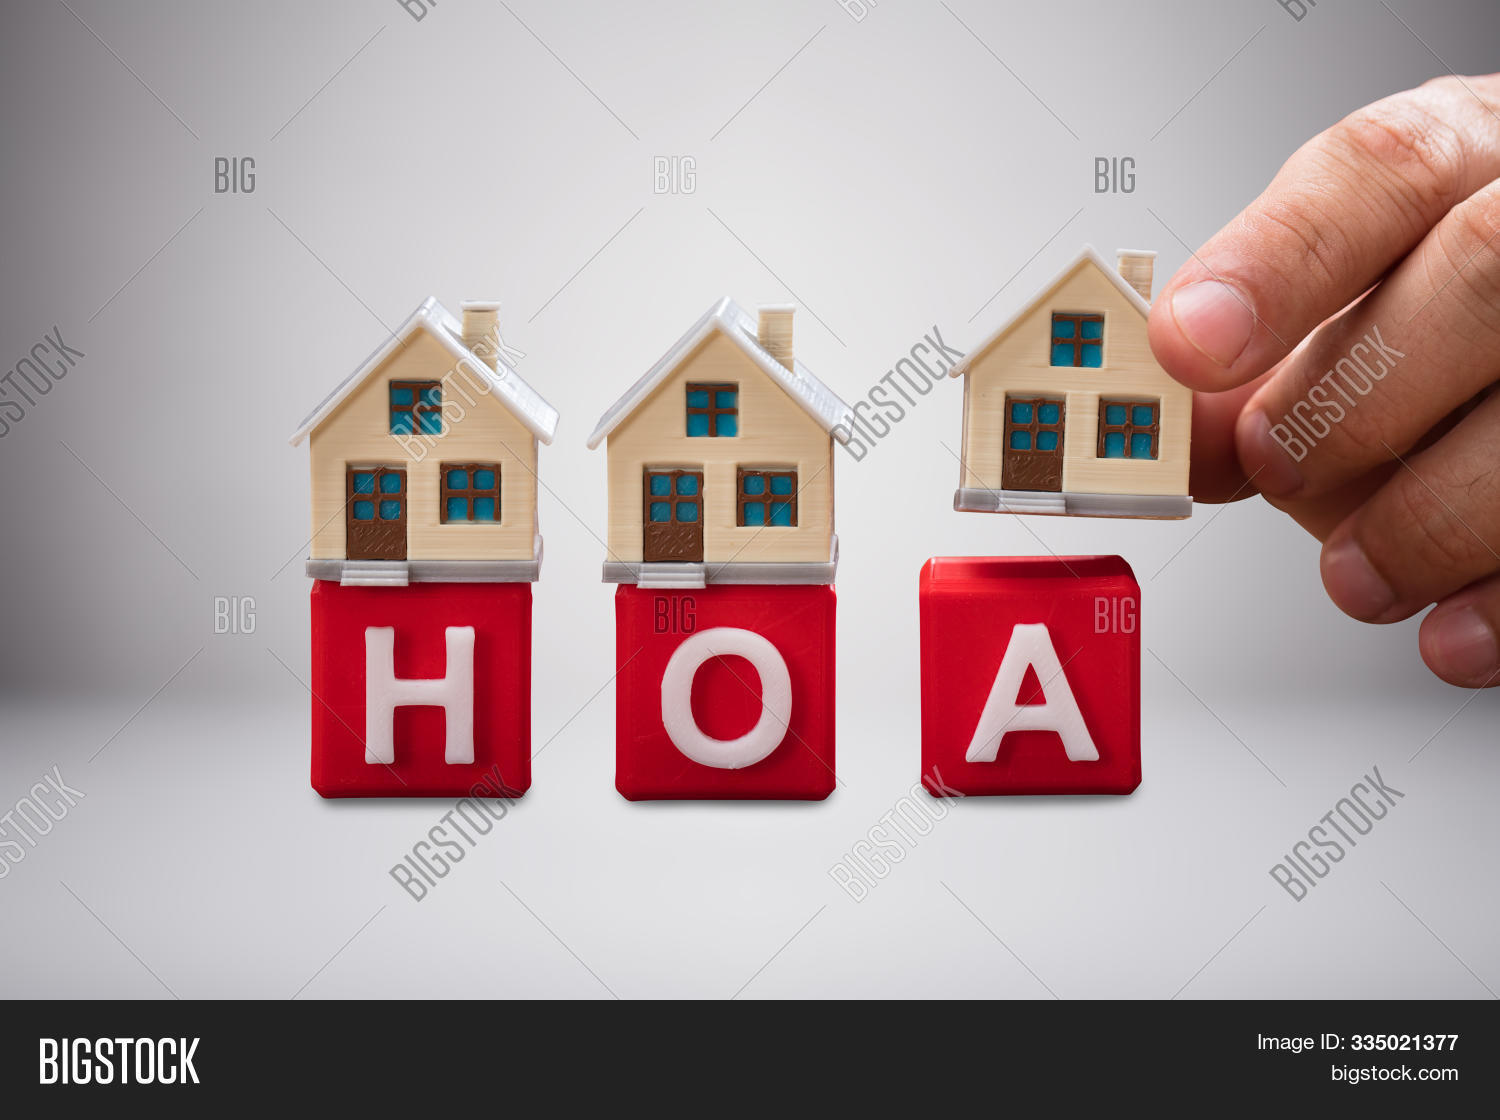 adult,alphabet,arrange,association,backdrop,background,block,buy,capital,closeup,community,concept,conceptual,cube,desk,estate,finger,hand,hoa,hold,holding,home,homeowner,house,human,indoors,inside,letter,model,object,owner,people,person,placing,property,purchase,real,residential,row,sale,skin,studio,take,taking,white